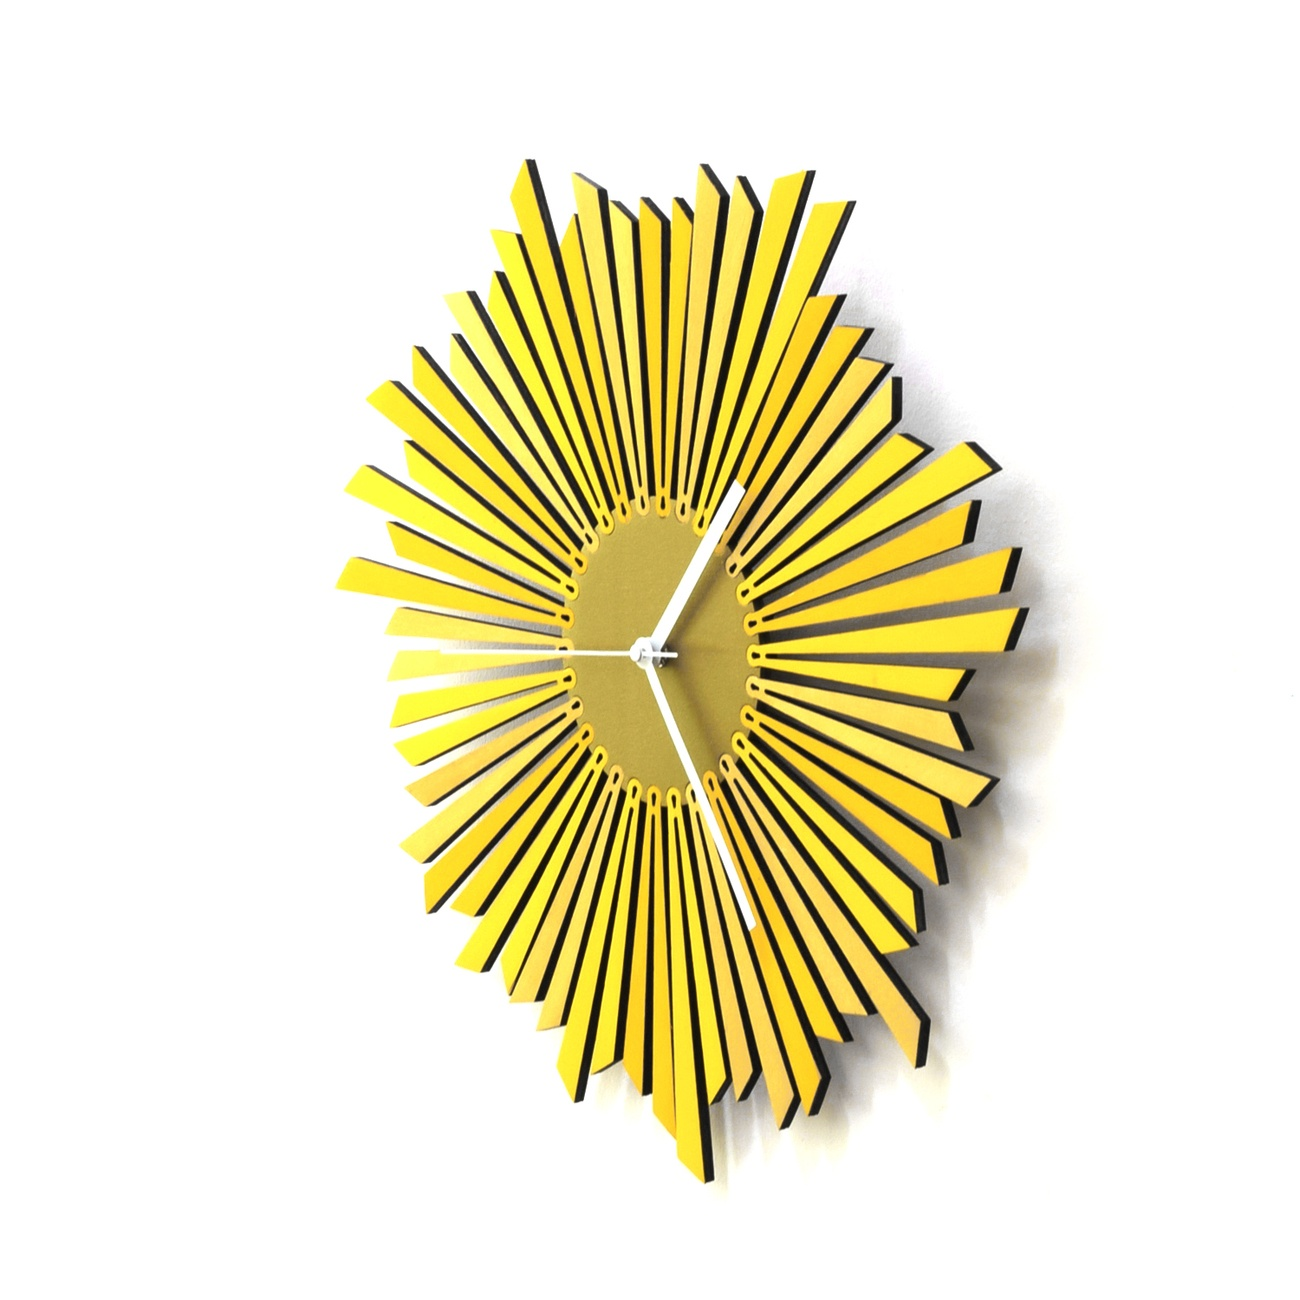 The Sun – Stylish Yellow / Golden Wooden Wall Clock